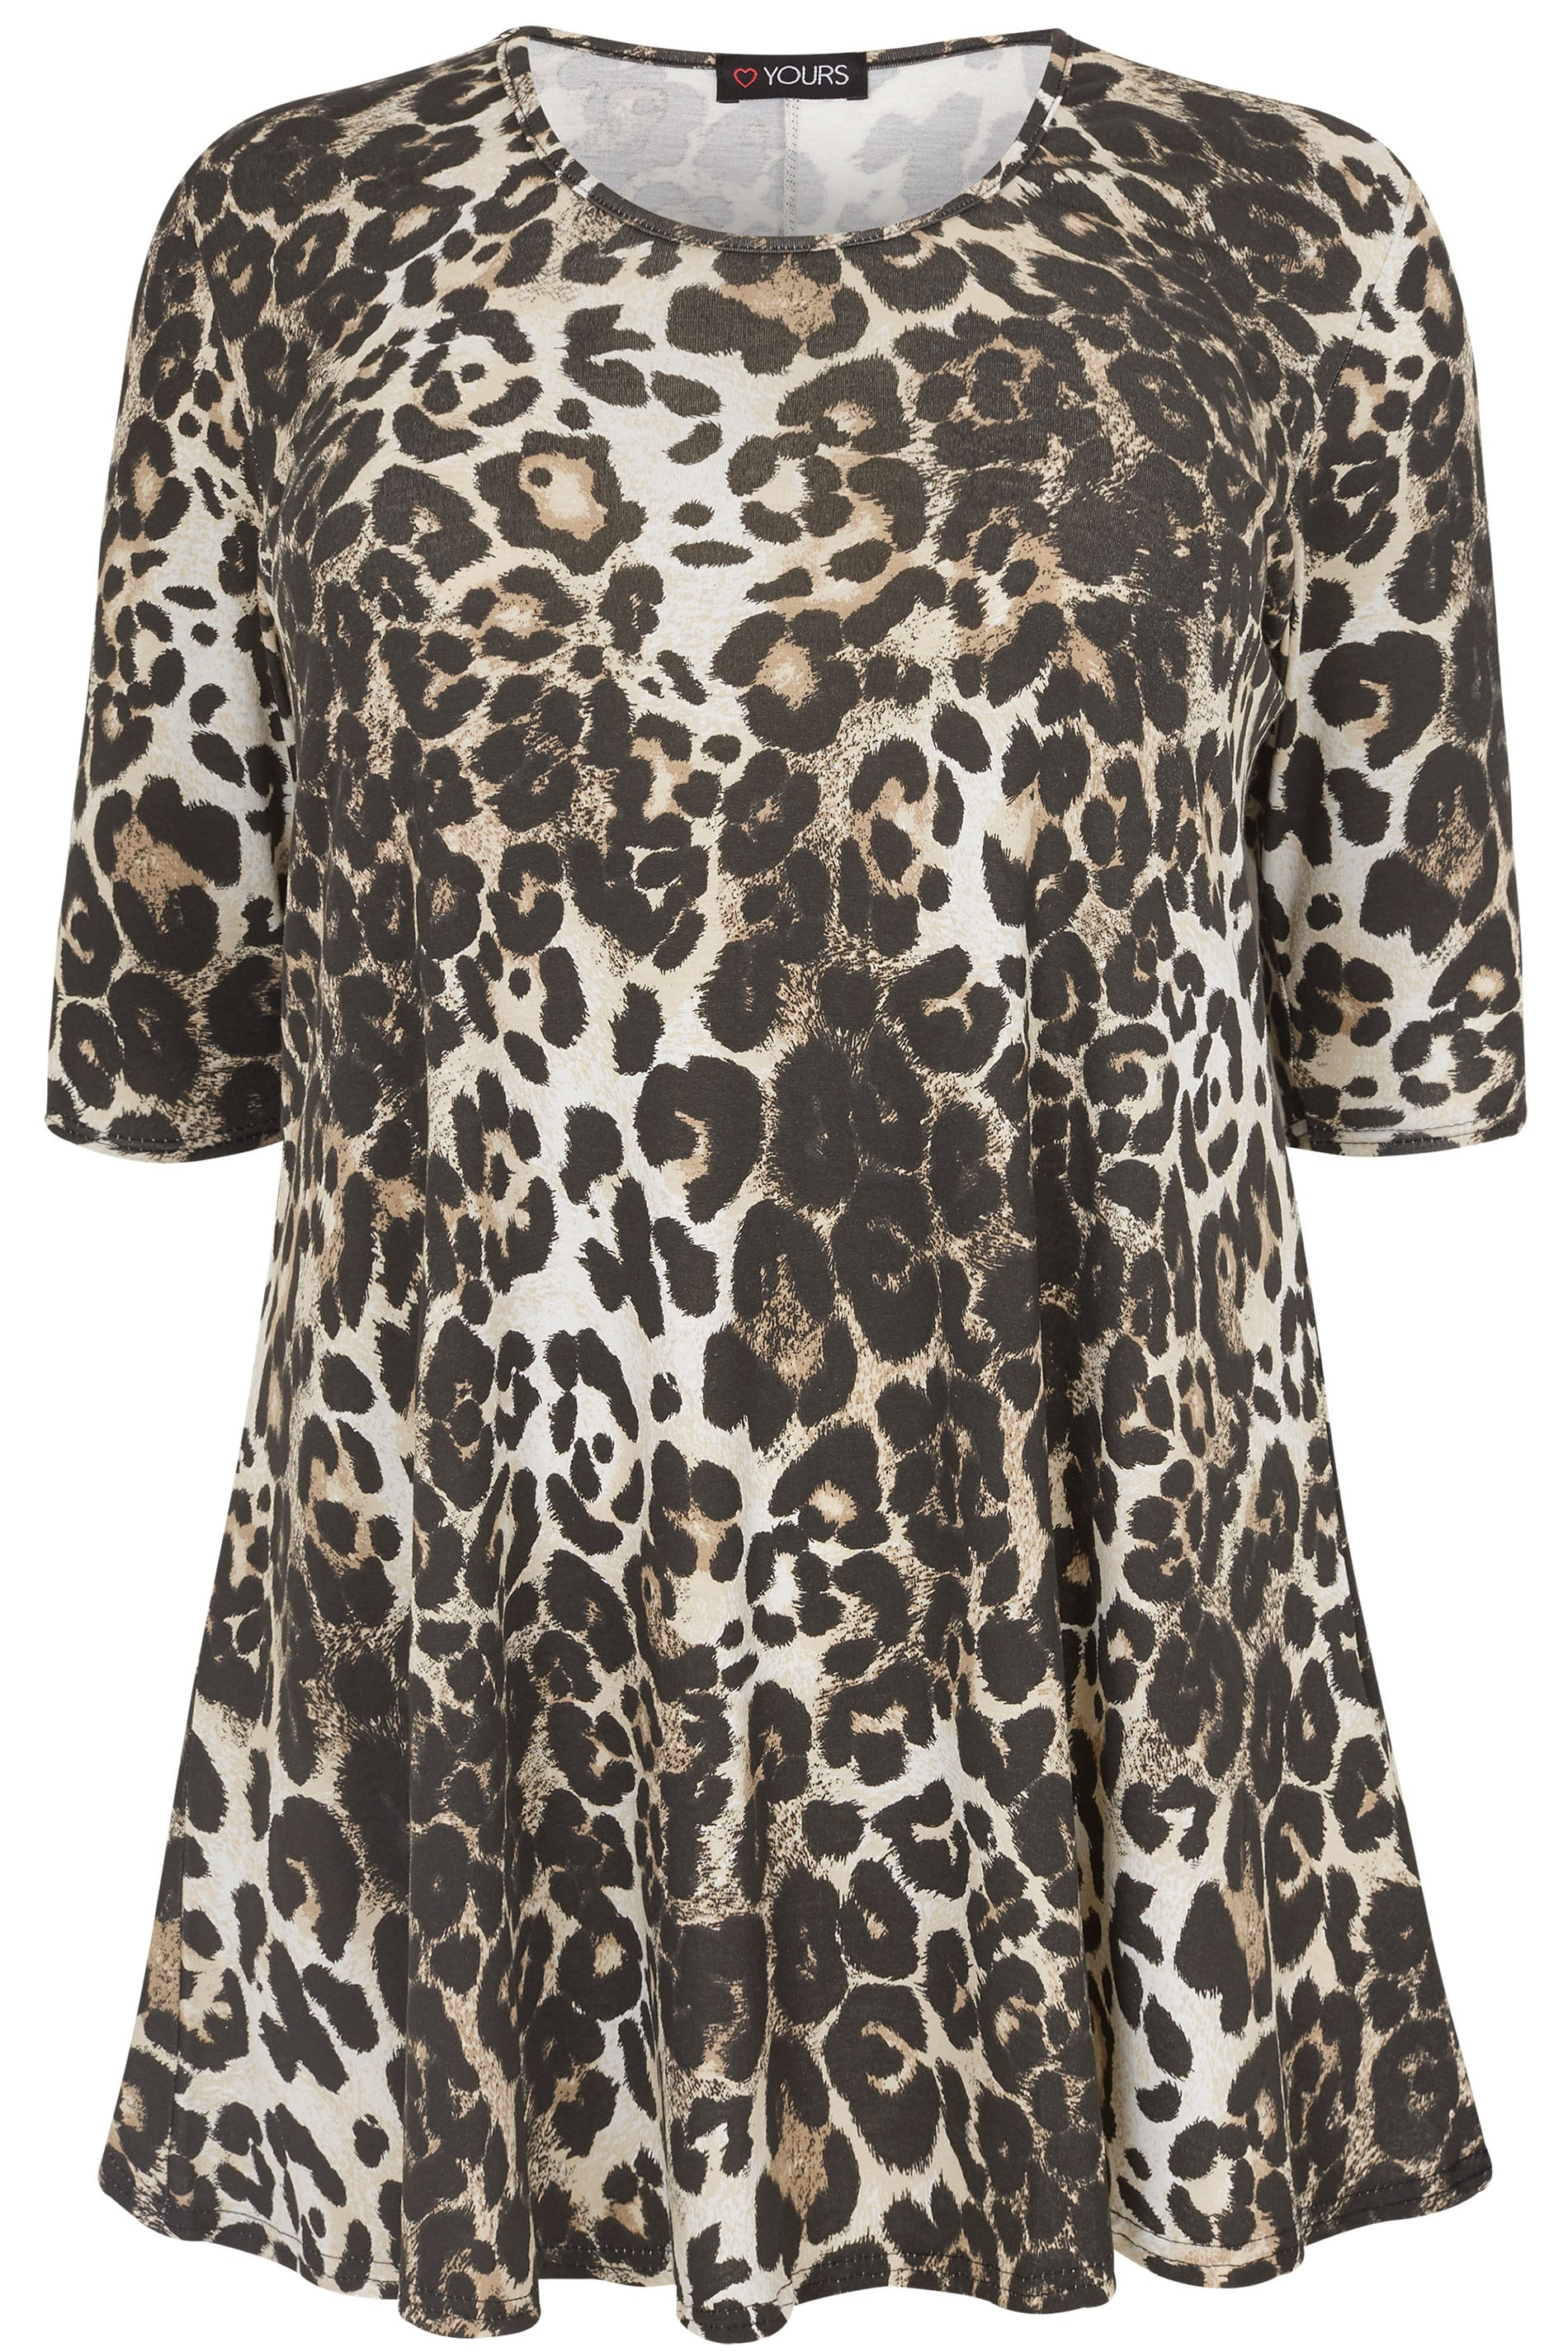 Leopard Print Animal Swing Top Plus Size 16 To 36